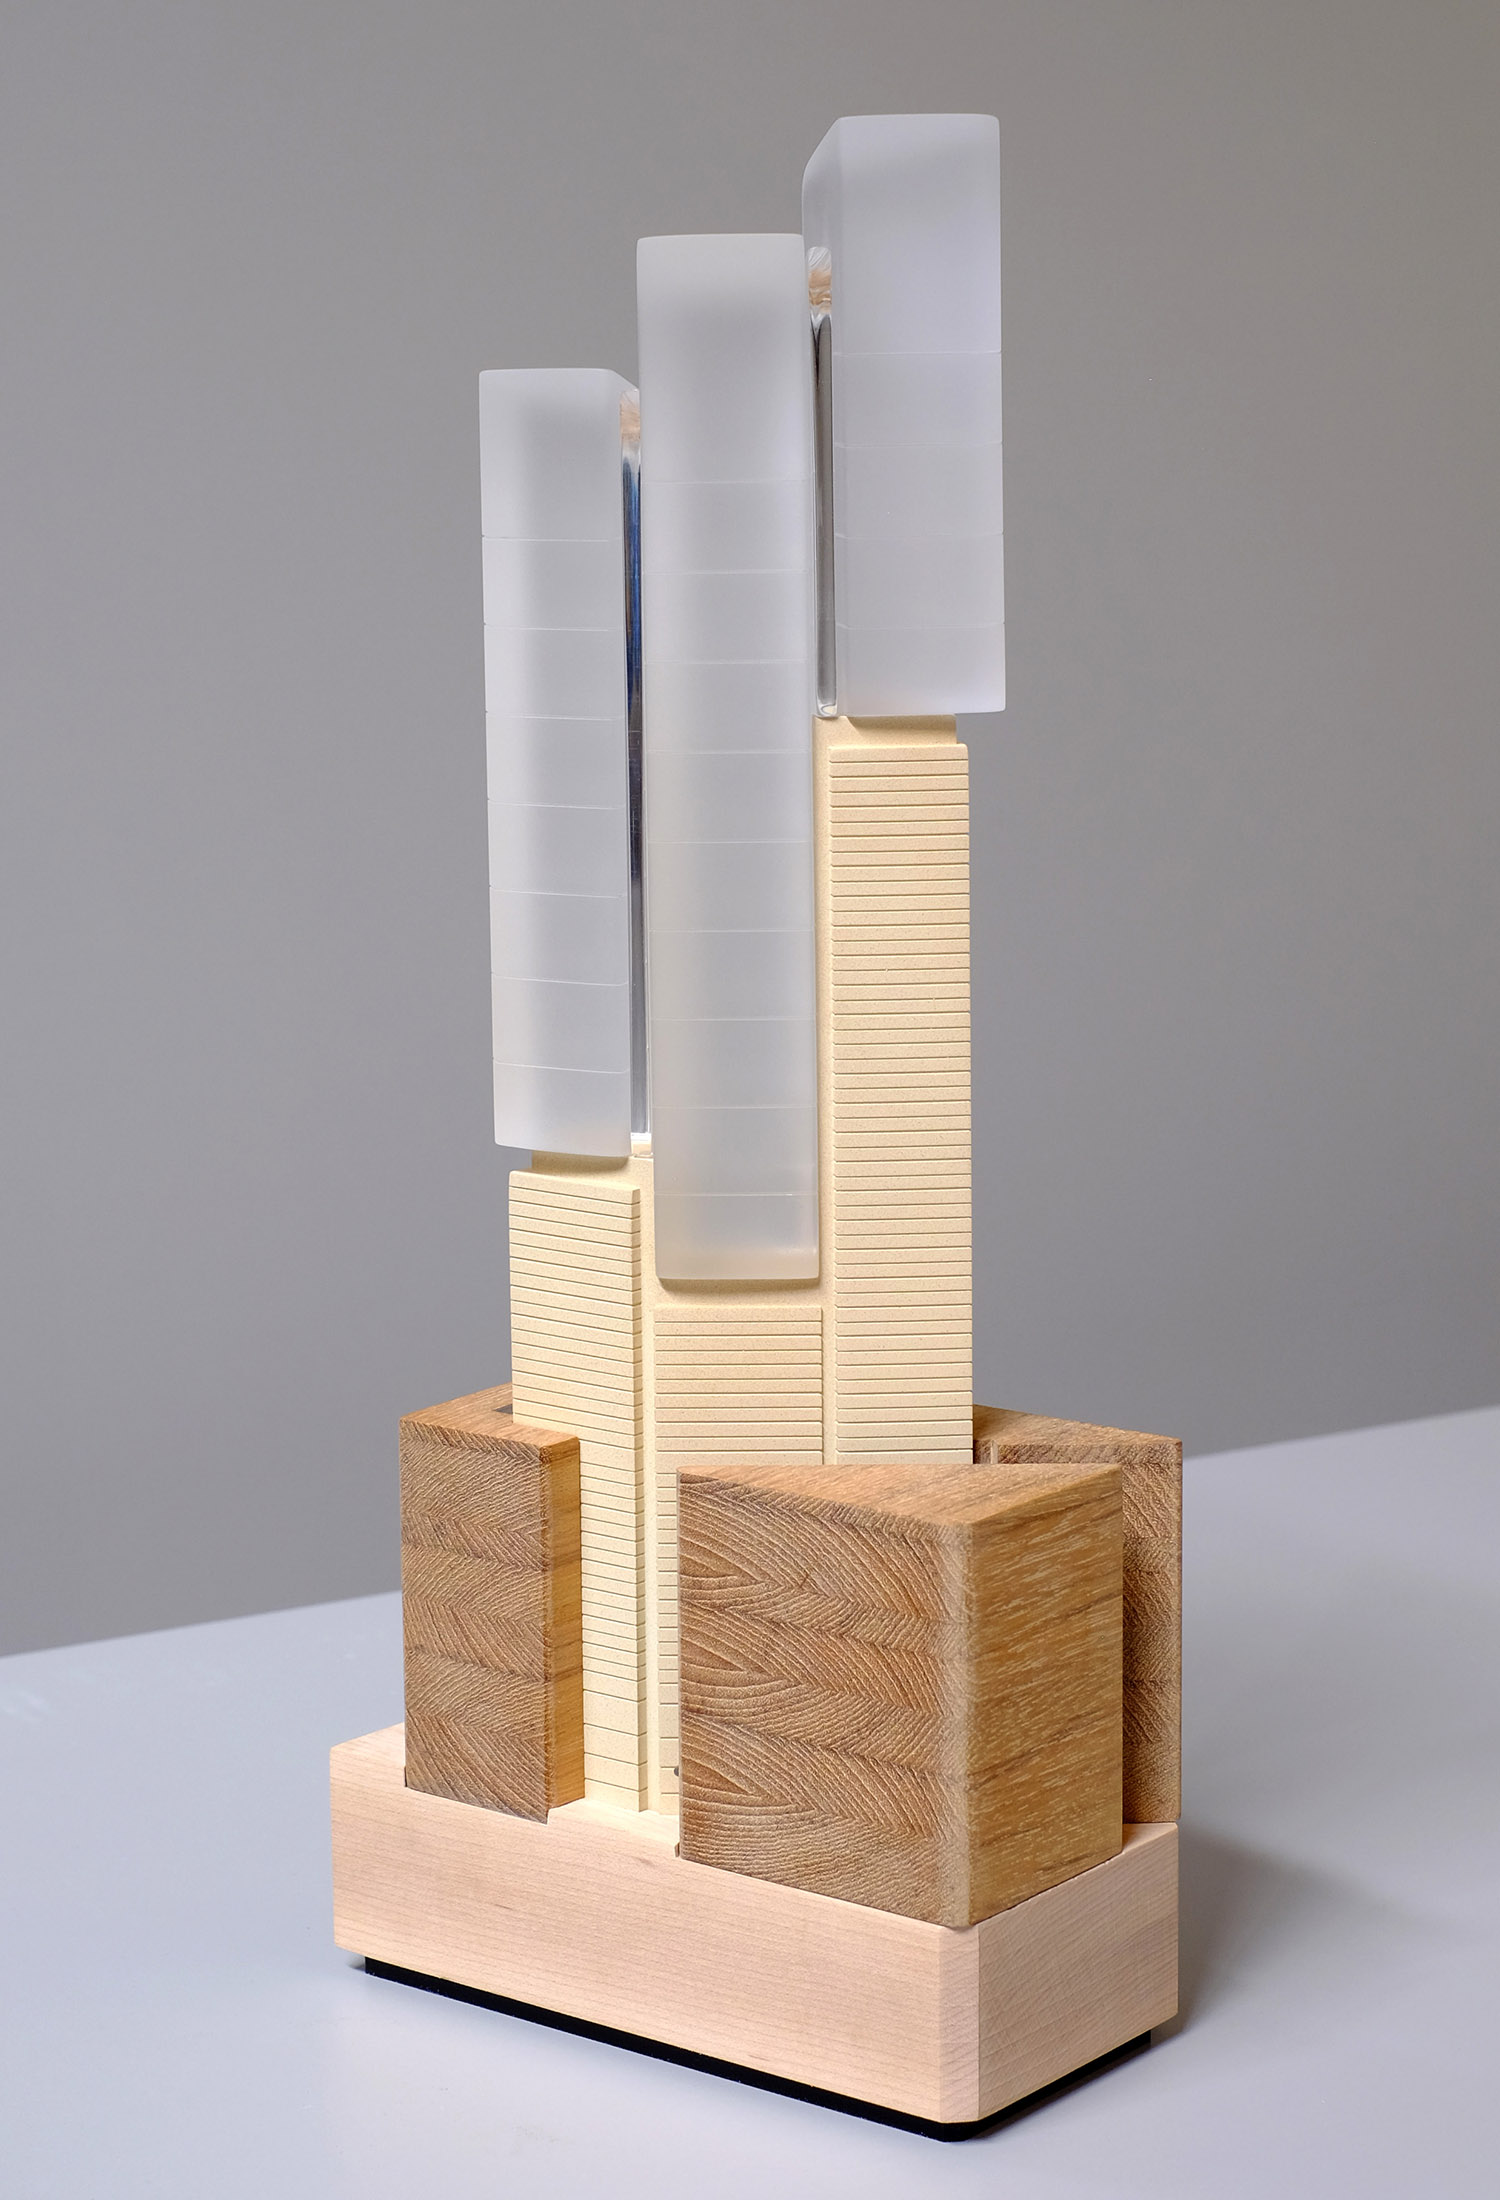 Competition model for 201 Elizabeth St